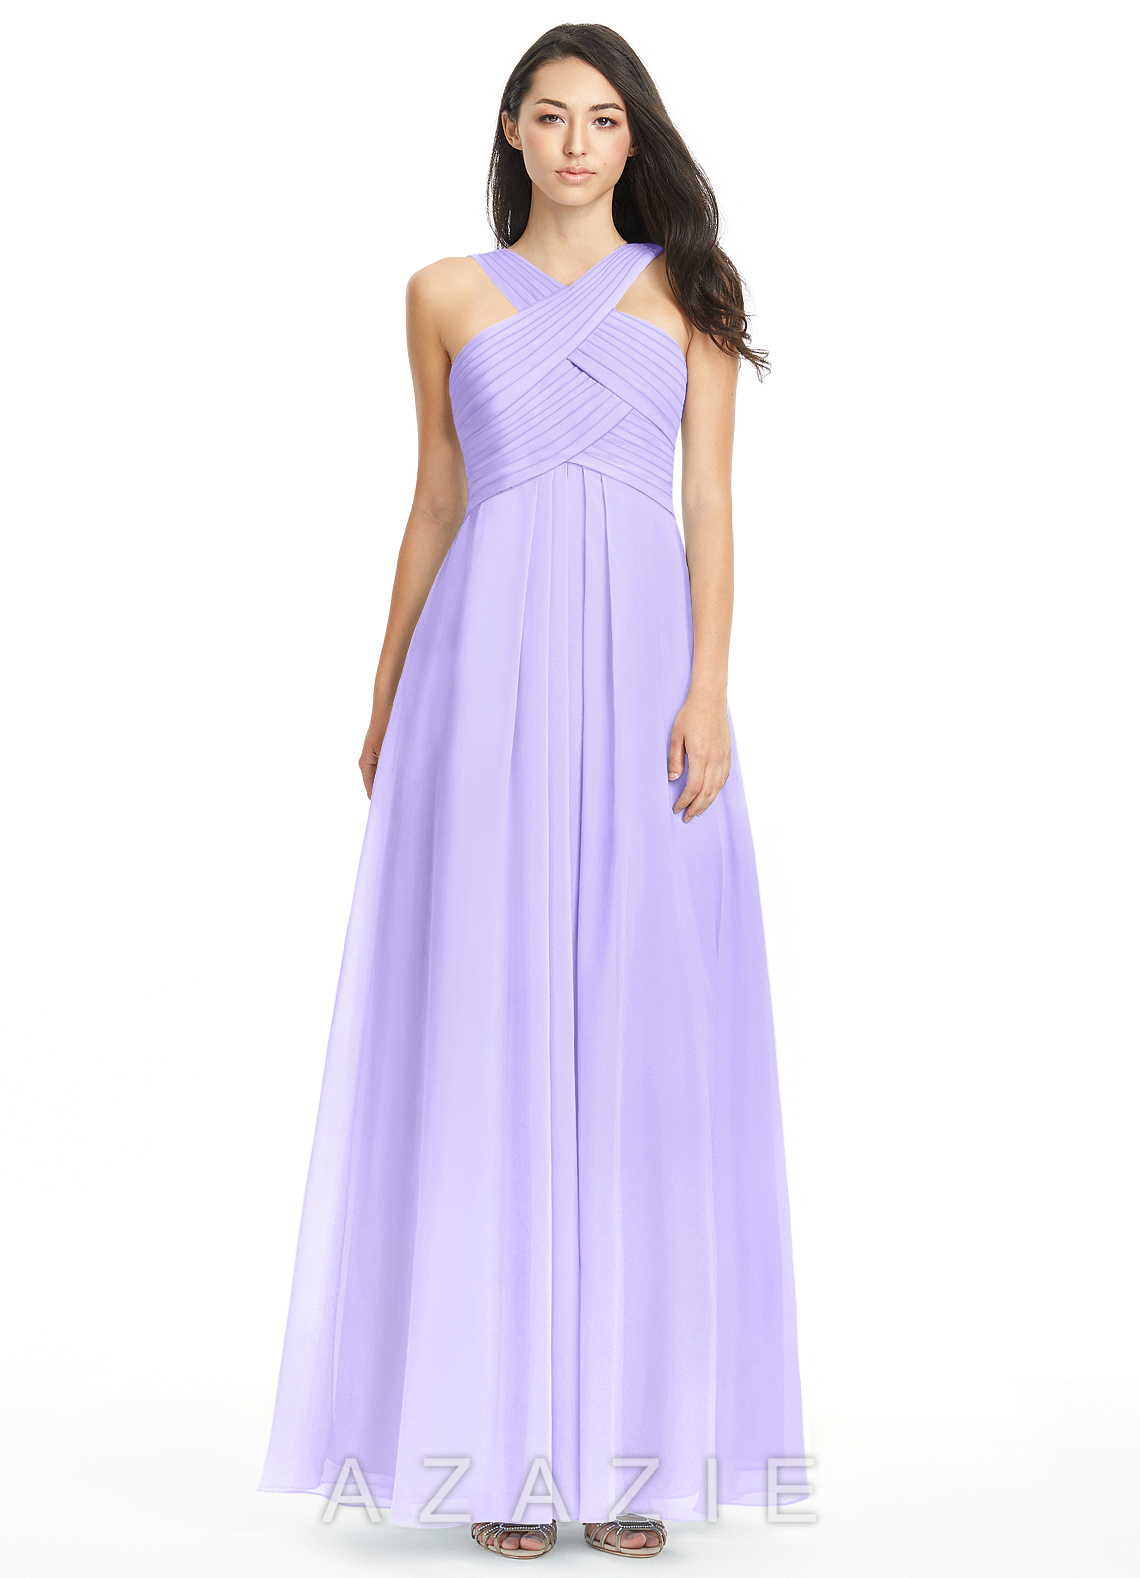 Lilac Bridesmaid Dresses & Lilac Gowns | Azazie